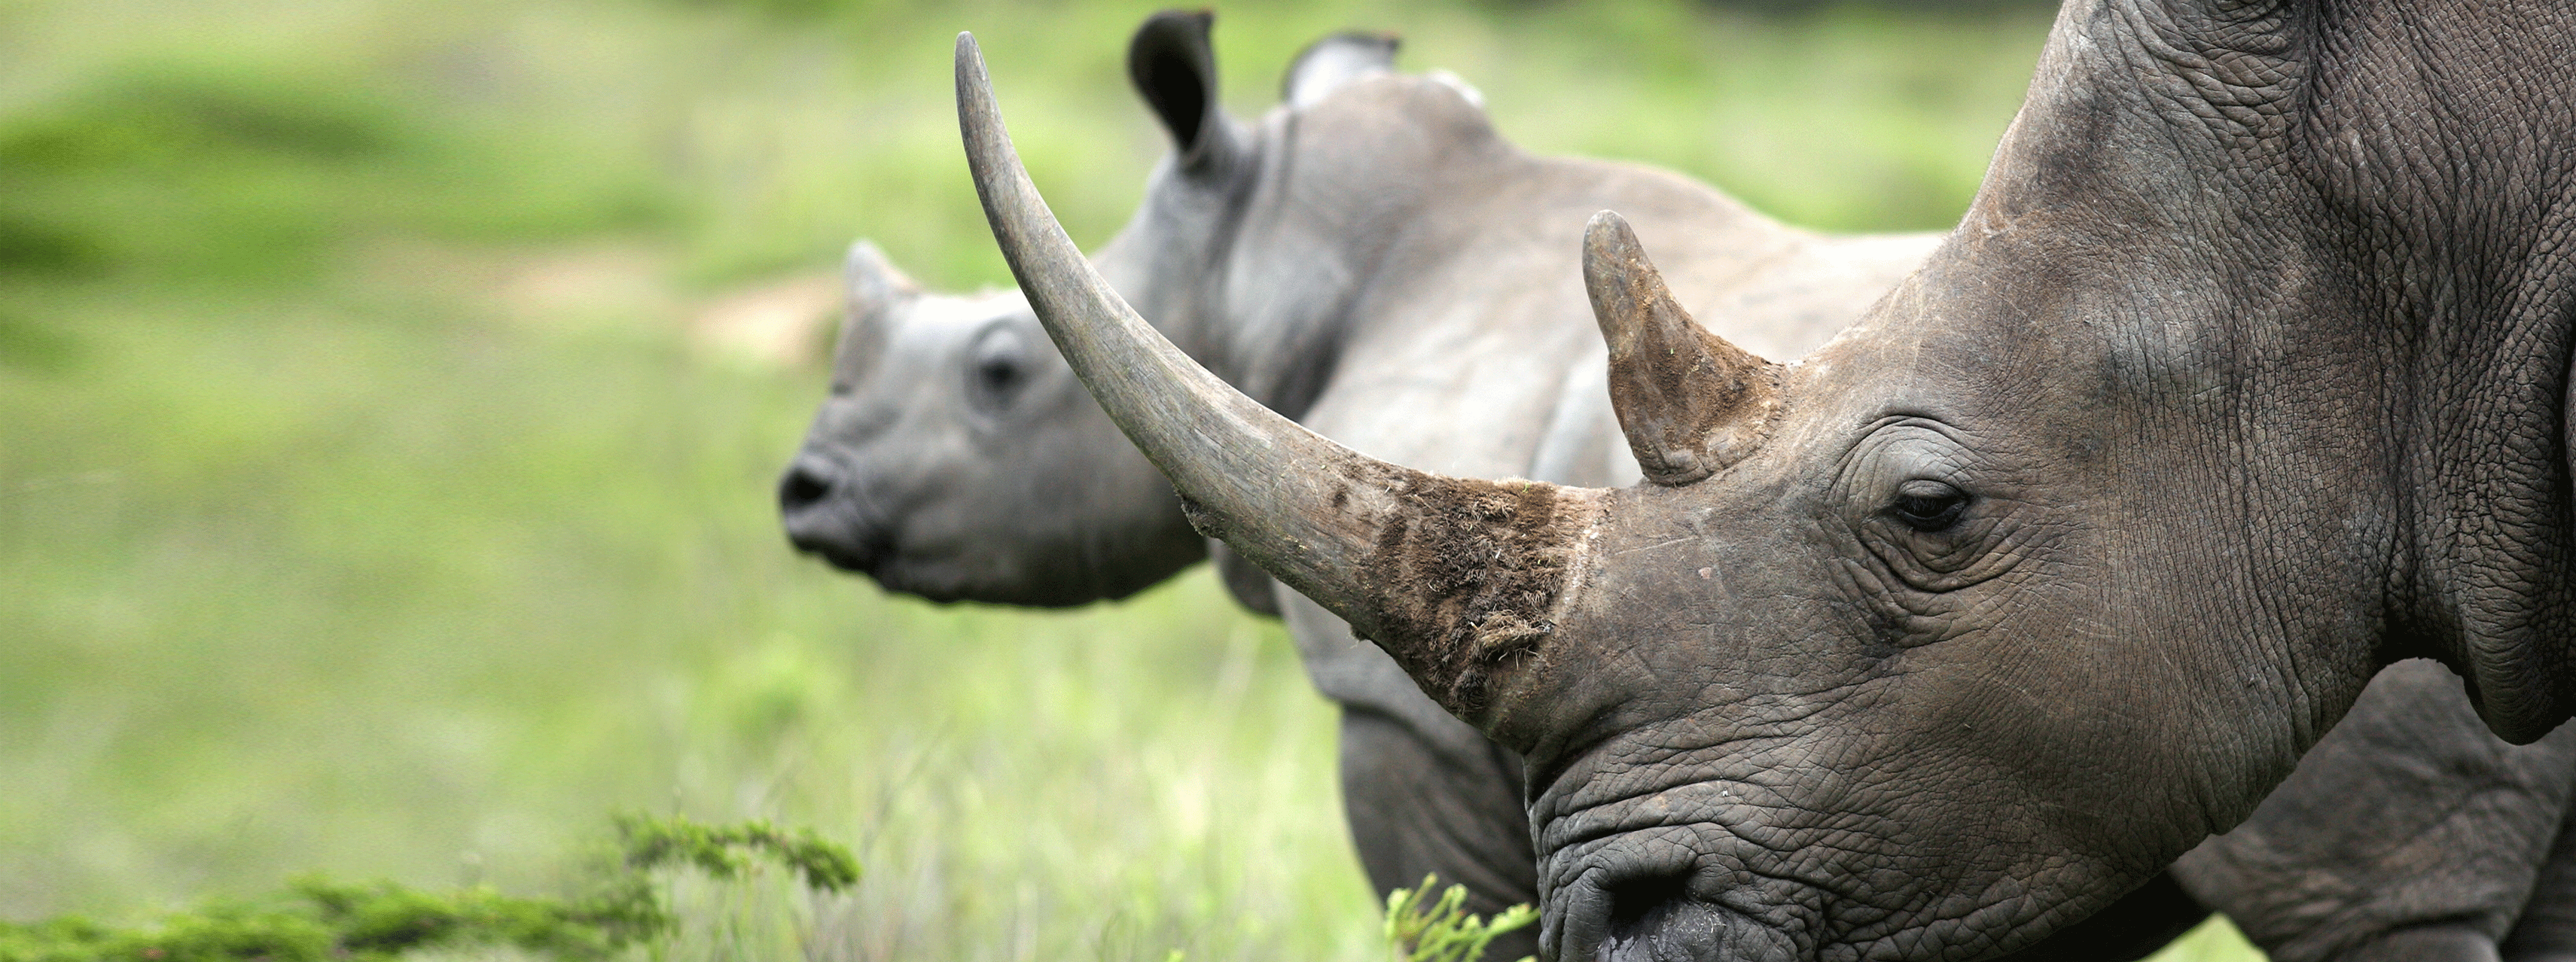 /resource/Images/Tanzania_Kenya/headerimage/rhinos.png